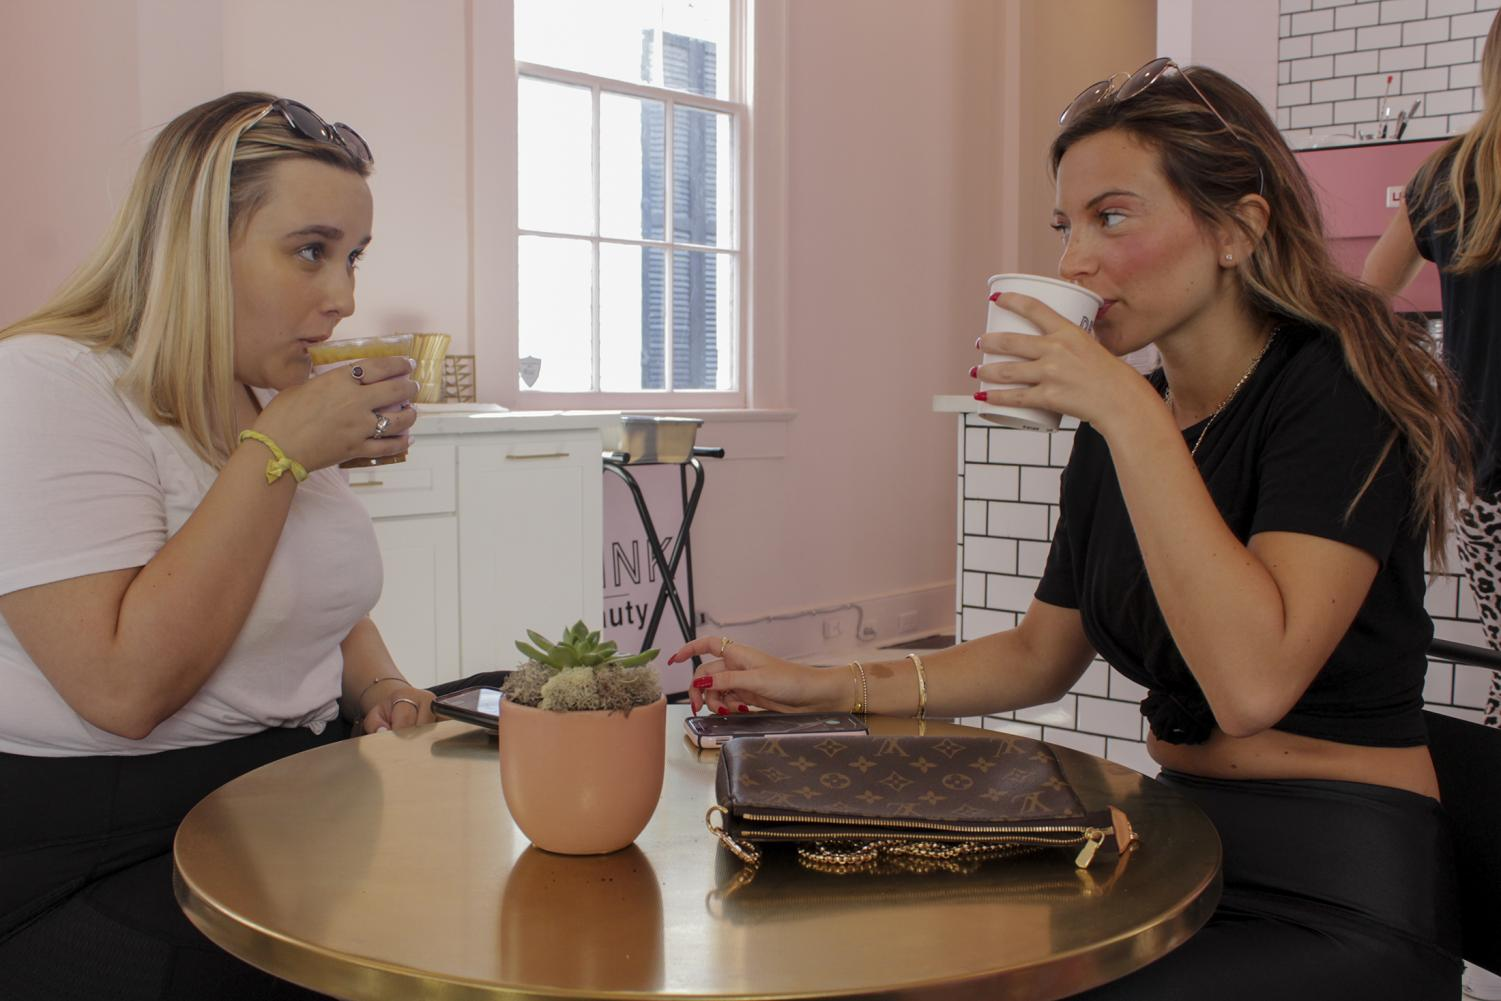 Loyola students Lily Glennon and Tess Rowland enjoying their drinks on Aug. 17, 2019. Drink Beauty is a cashless business, so all order transactions are made digitally. Photo credit: Caitlyn Reisgen